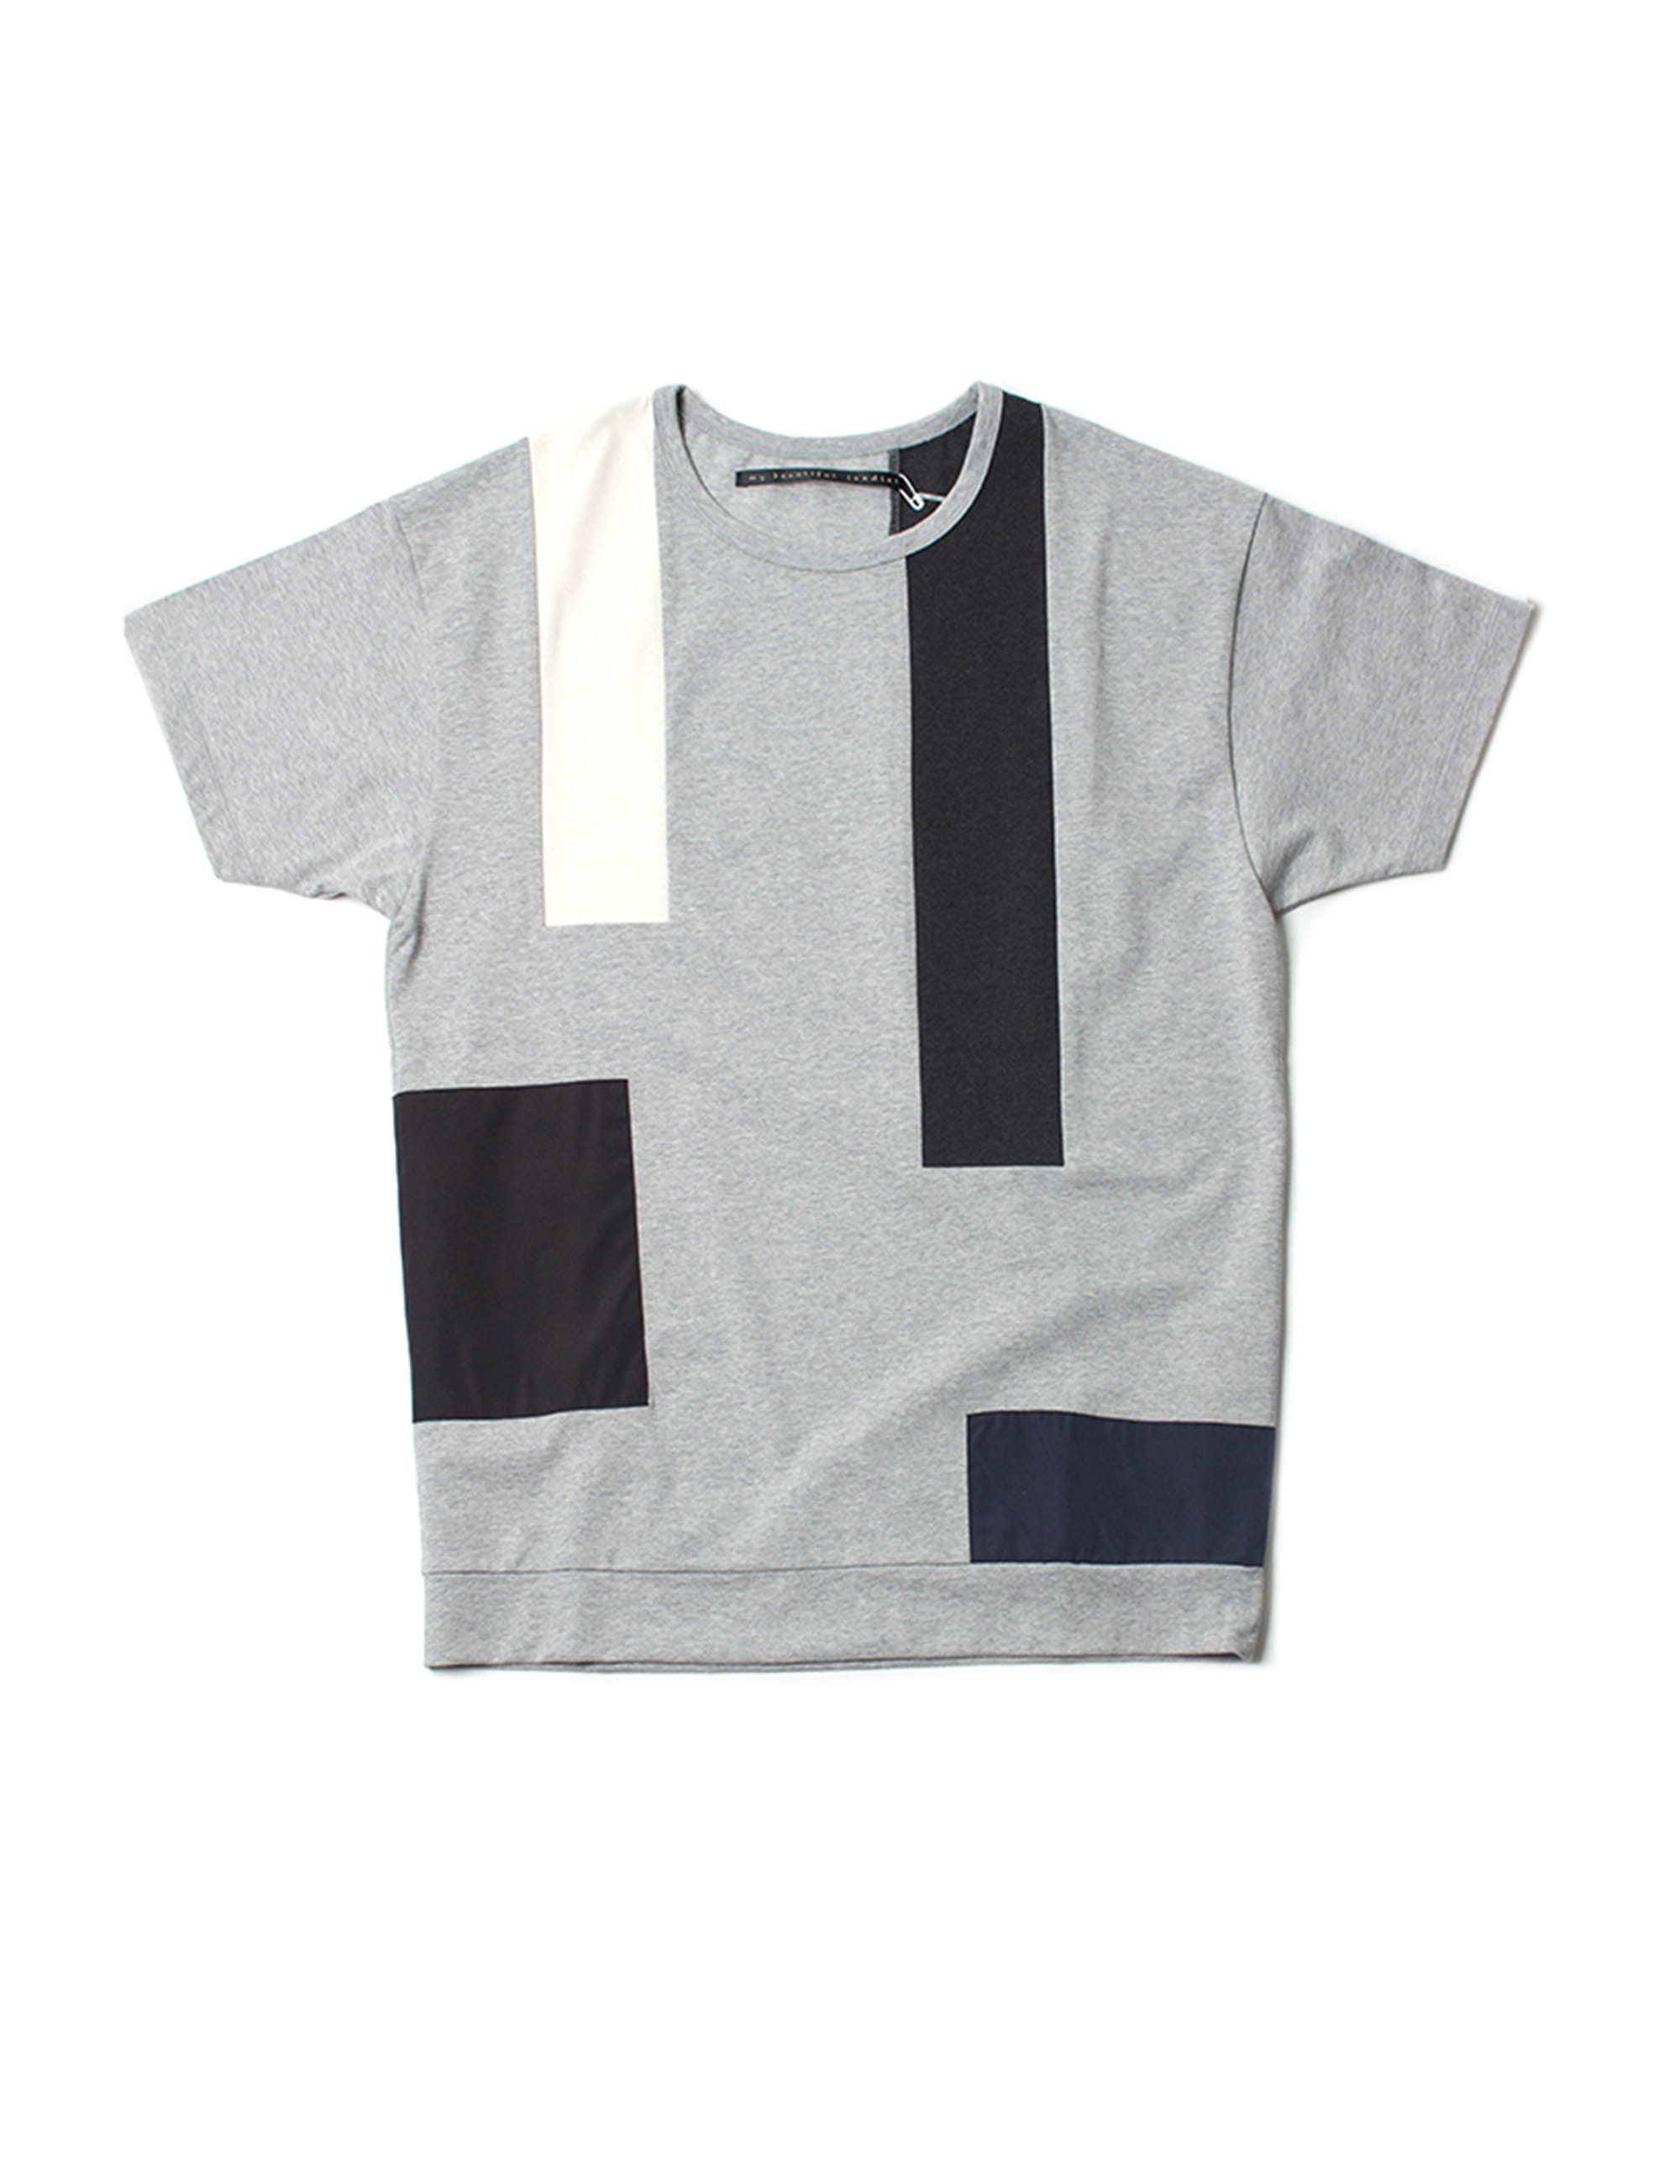 HEMP DYED KNITTED FABRIC TEE_GRAY